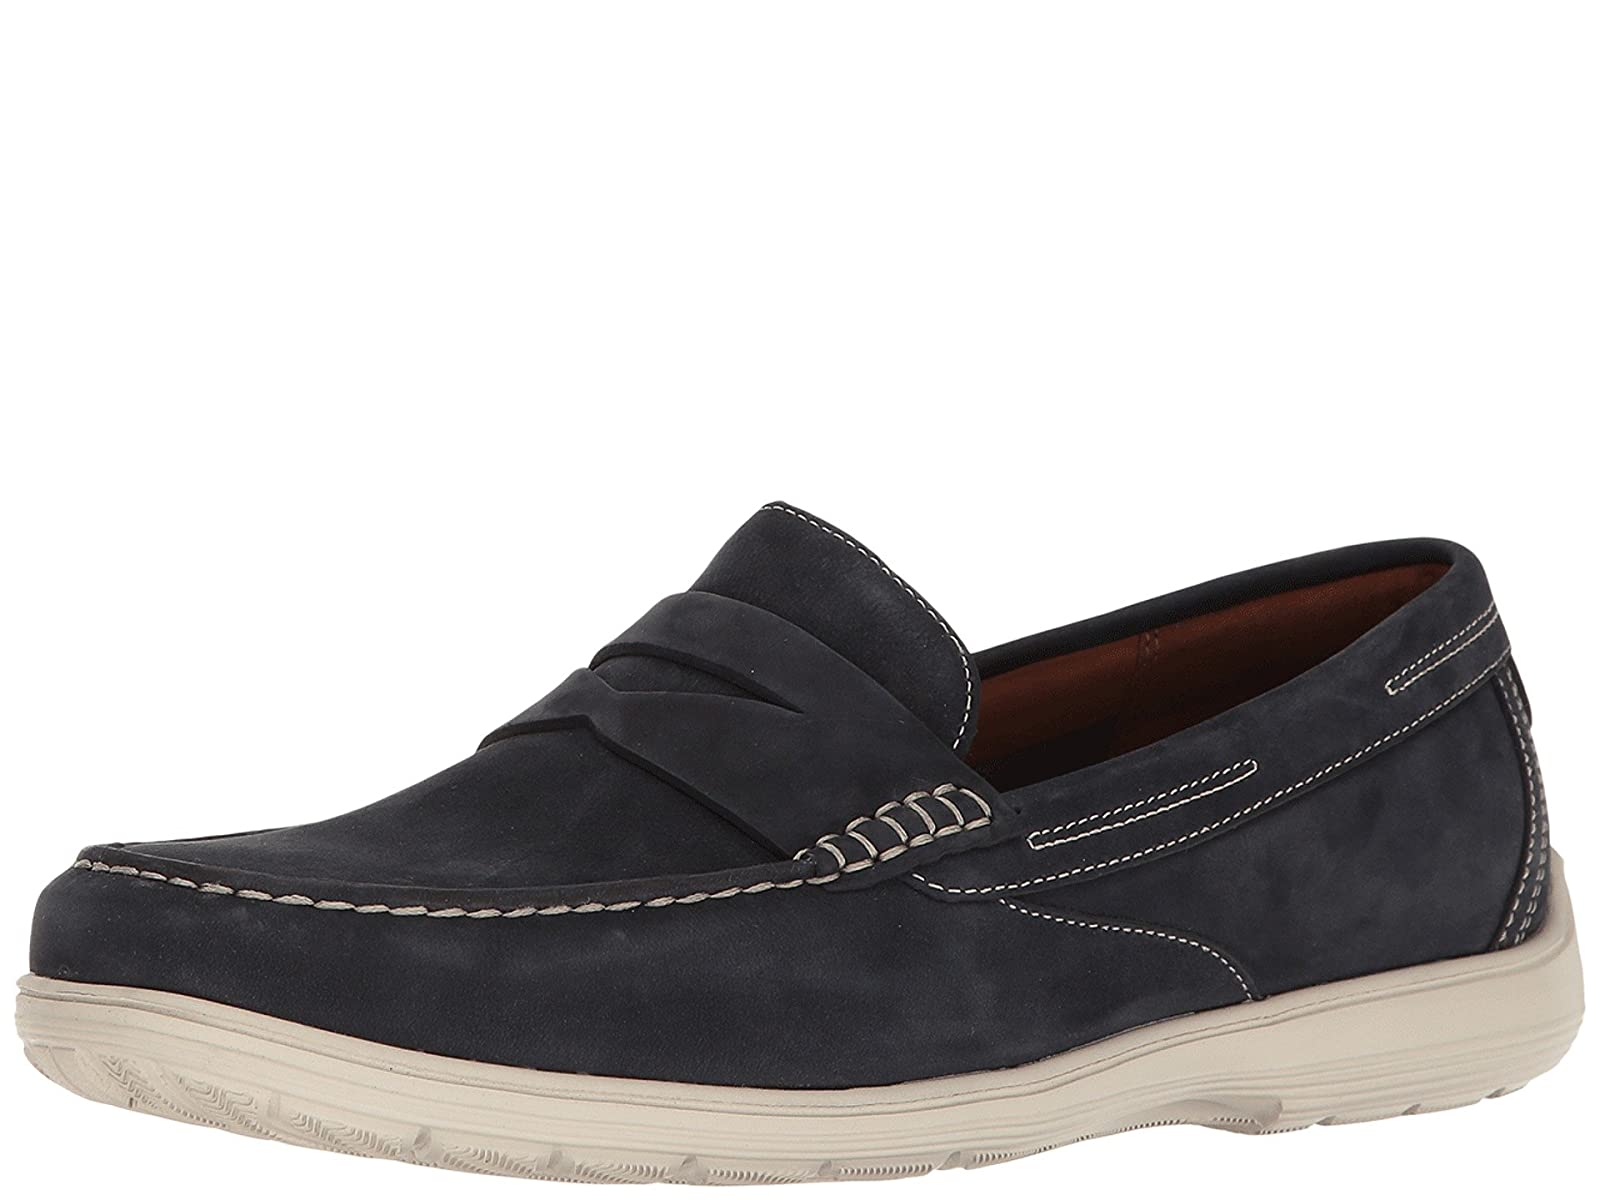 Rockport Total Motion Loafer PennyCheap and distinctive eye-catching shoes